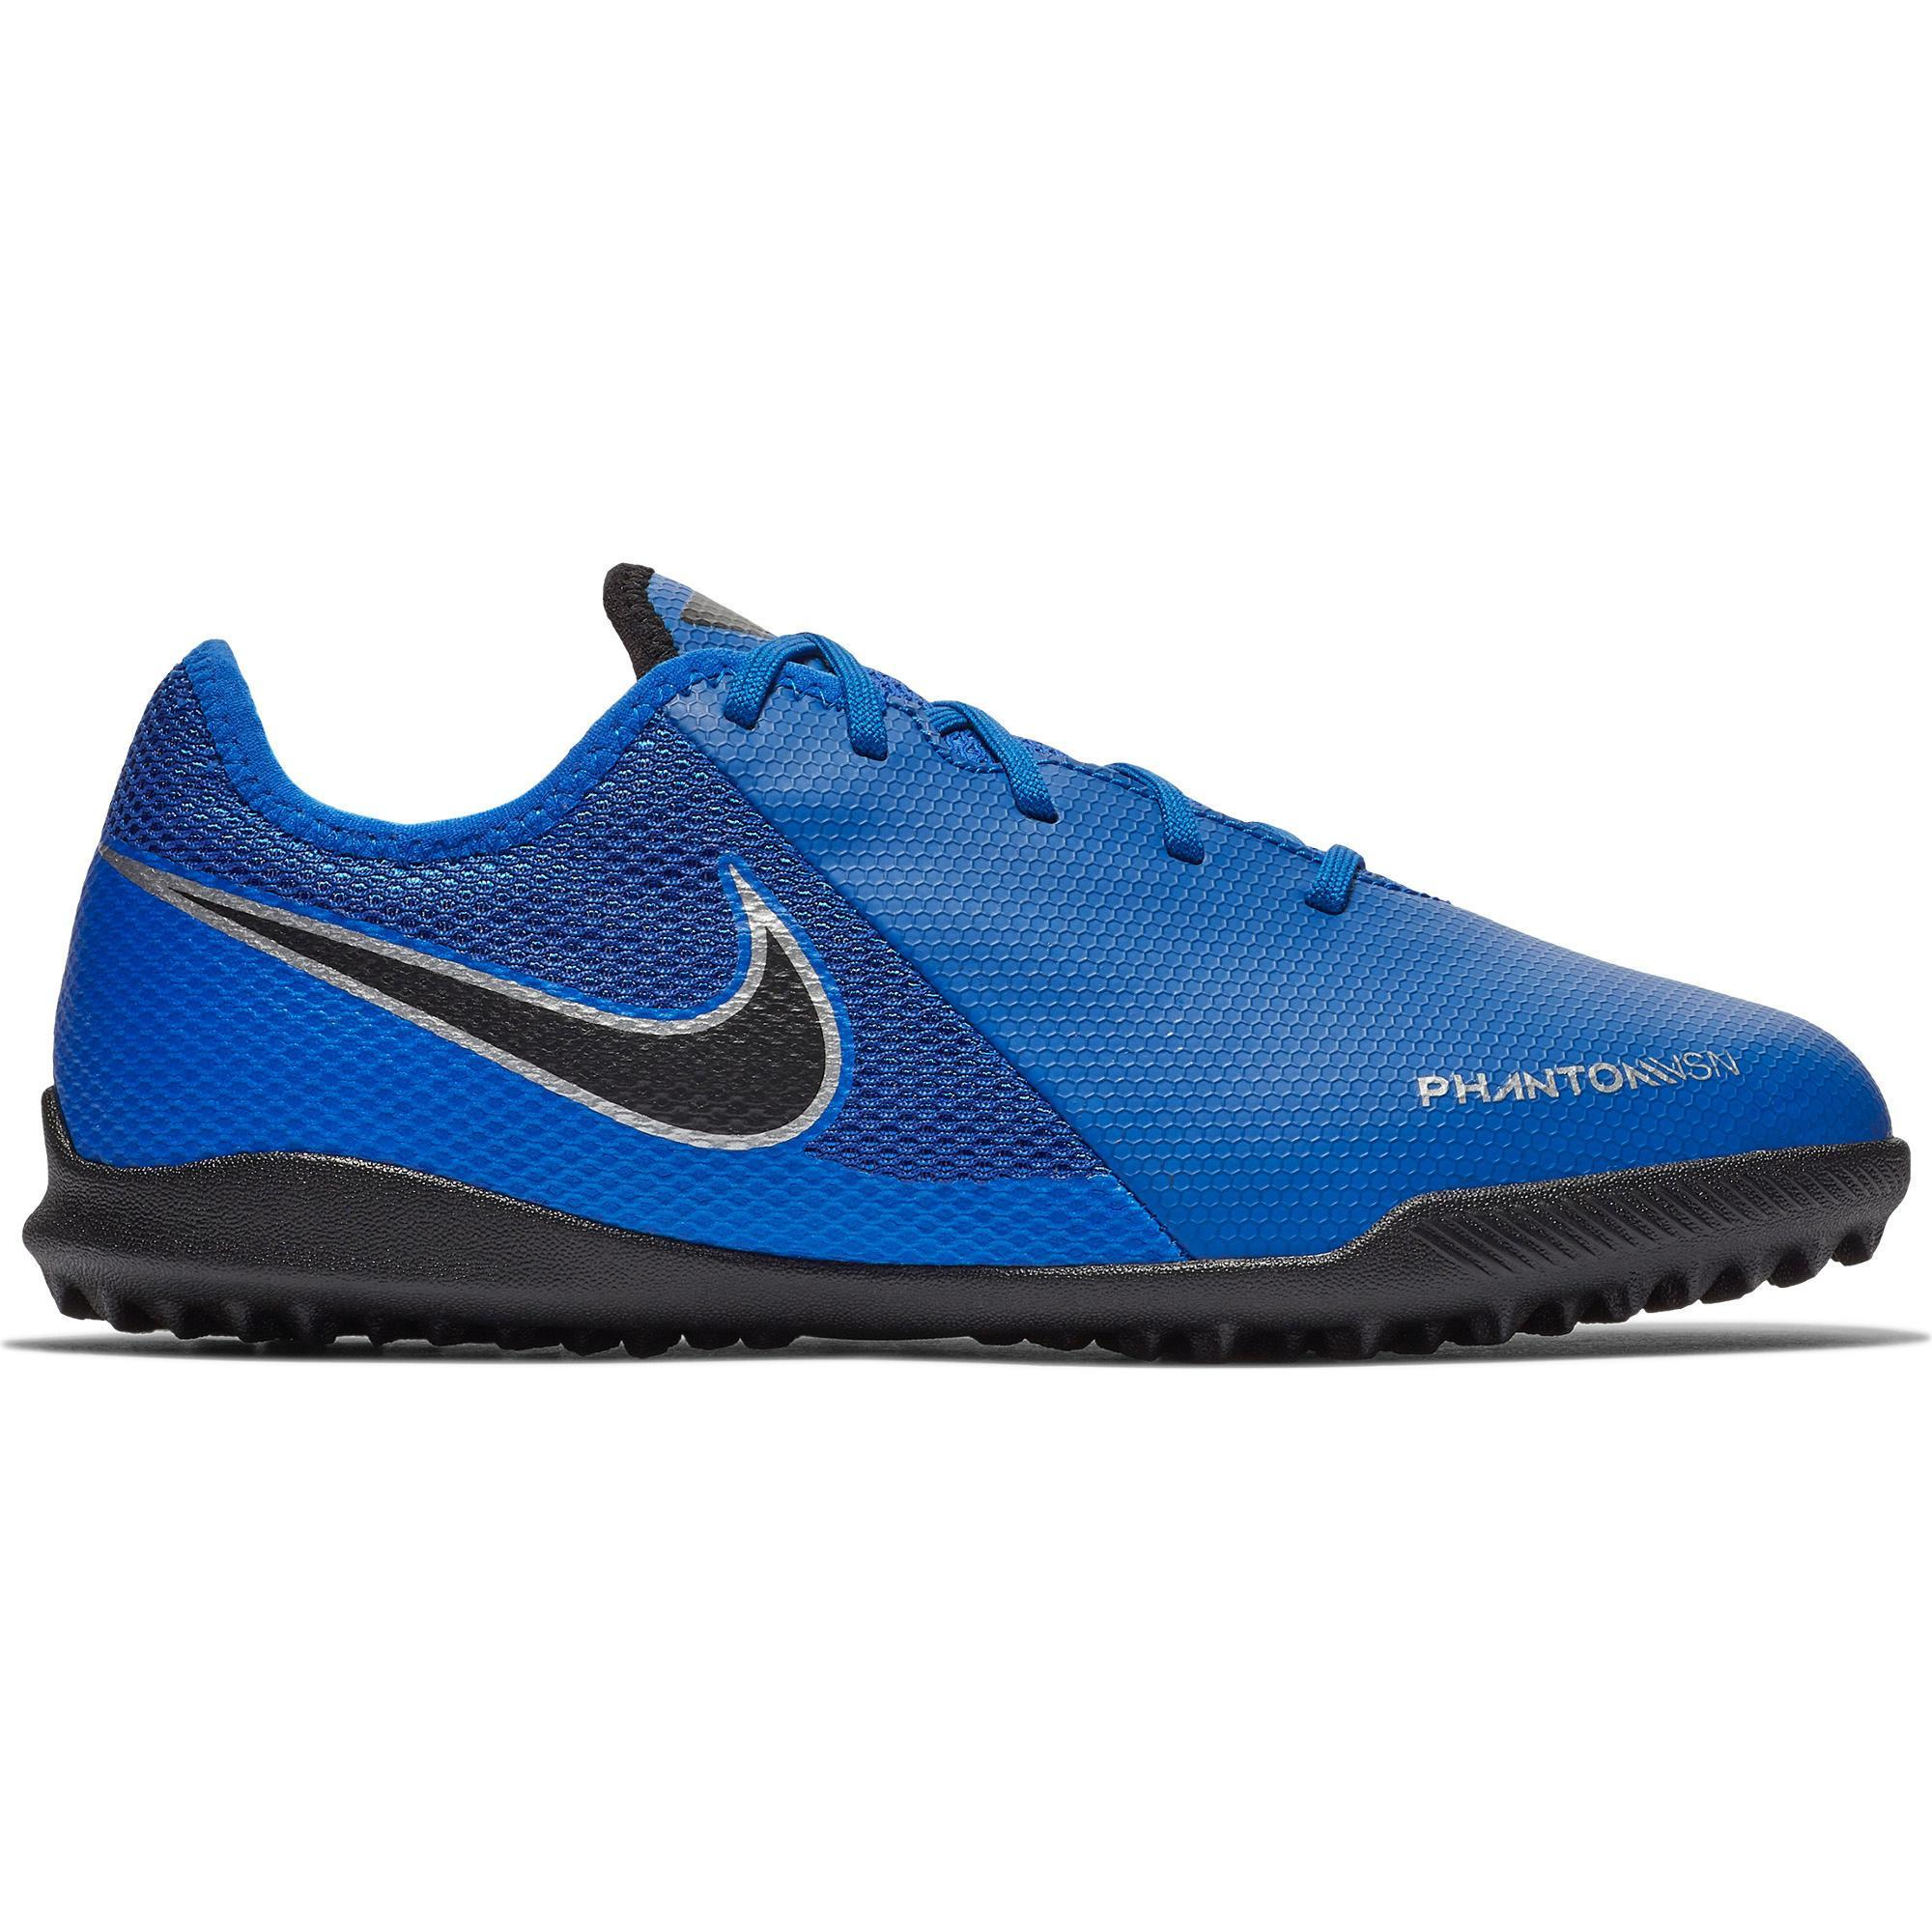 low priced ca07e 88f08 Nike artikelen online ← Decathlon.nl